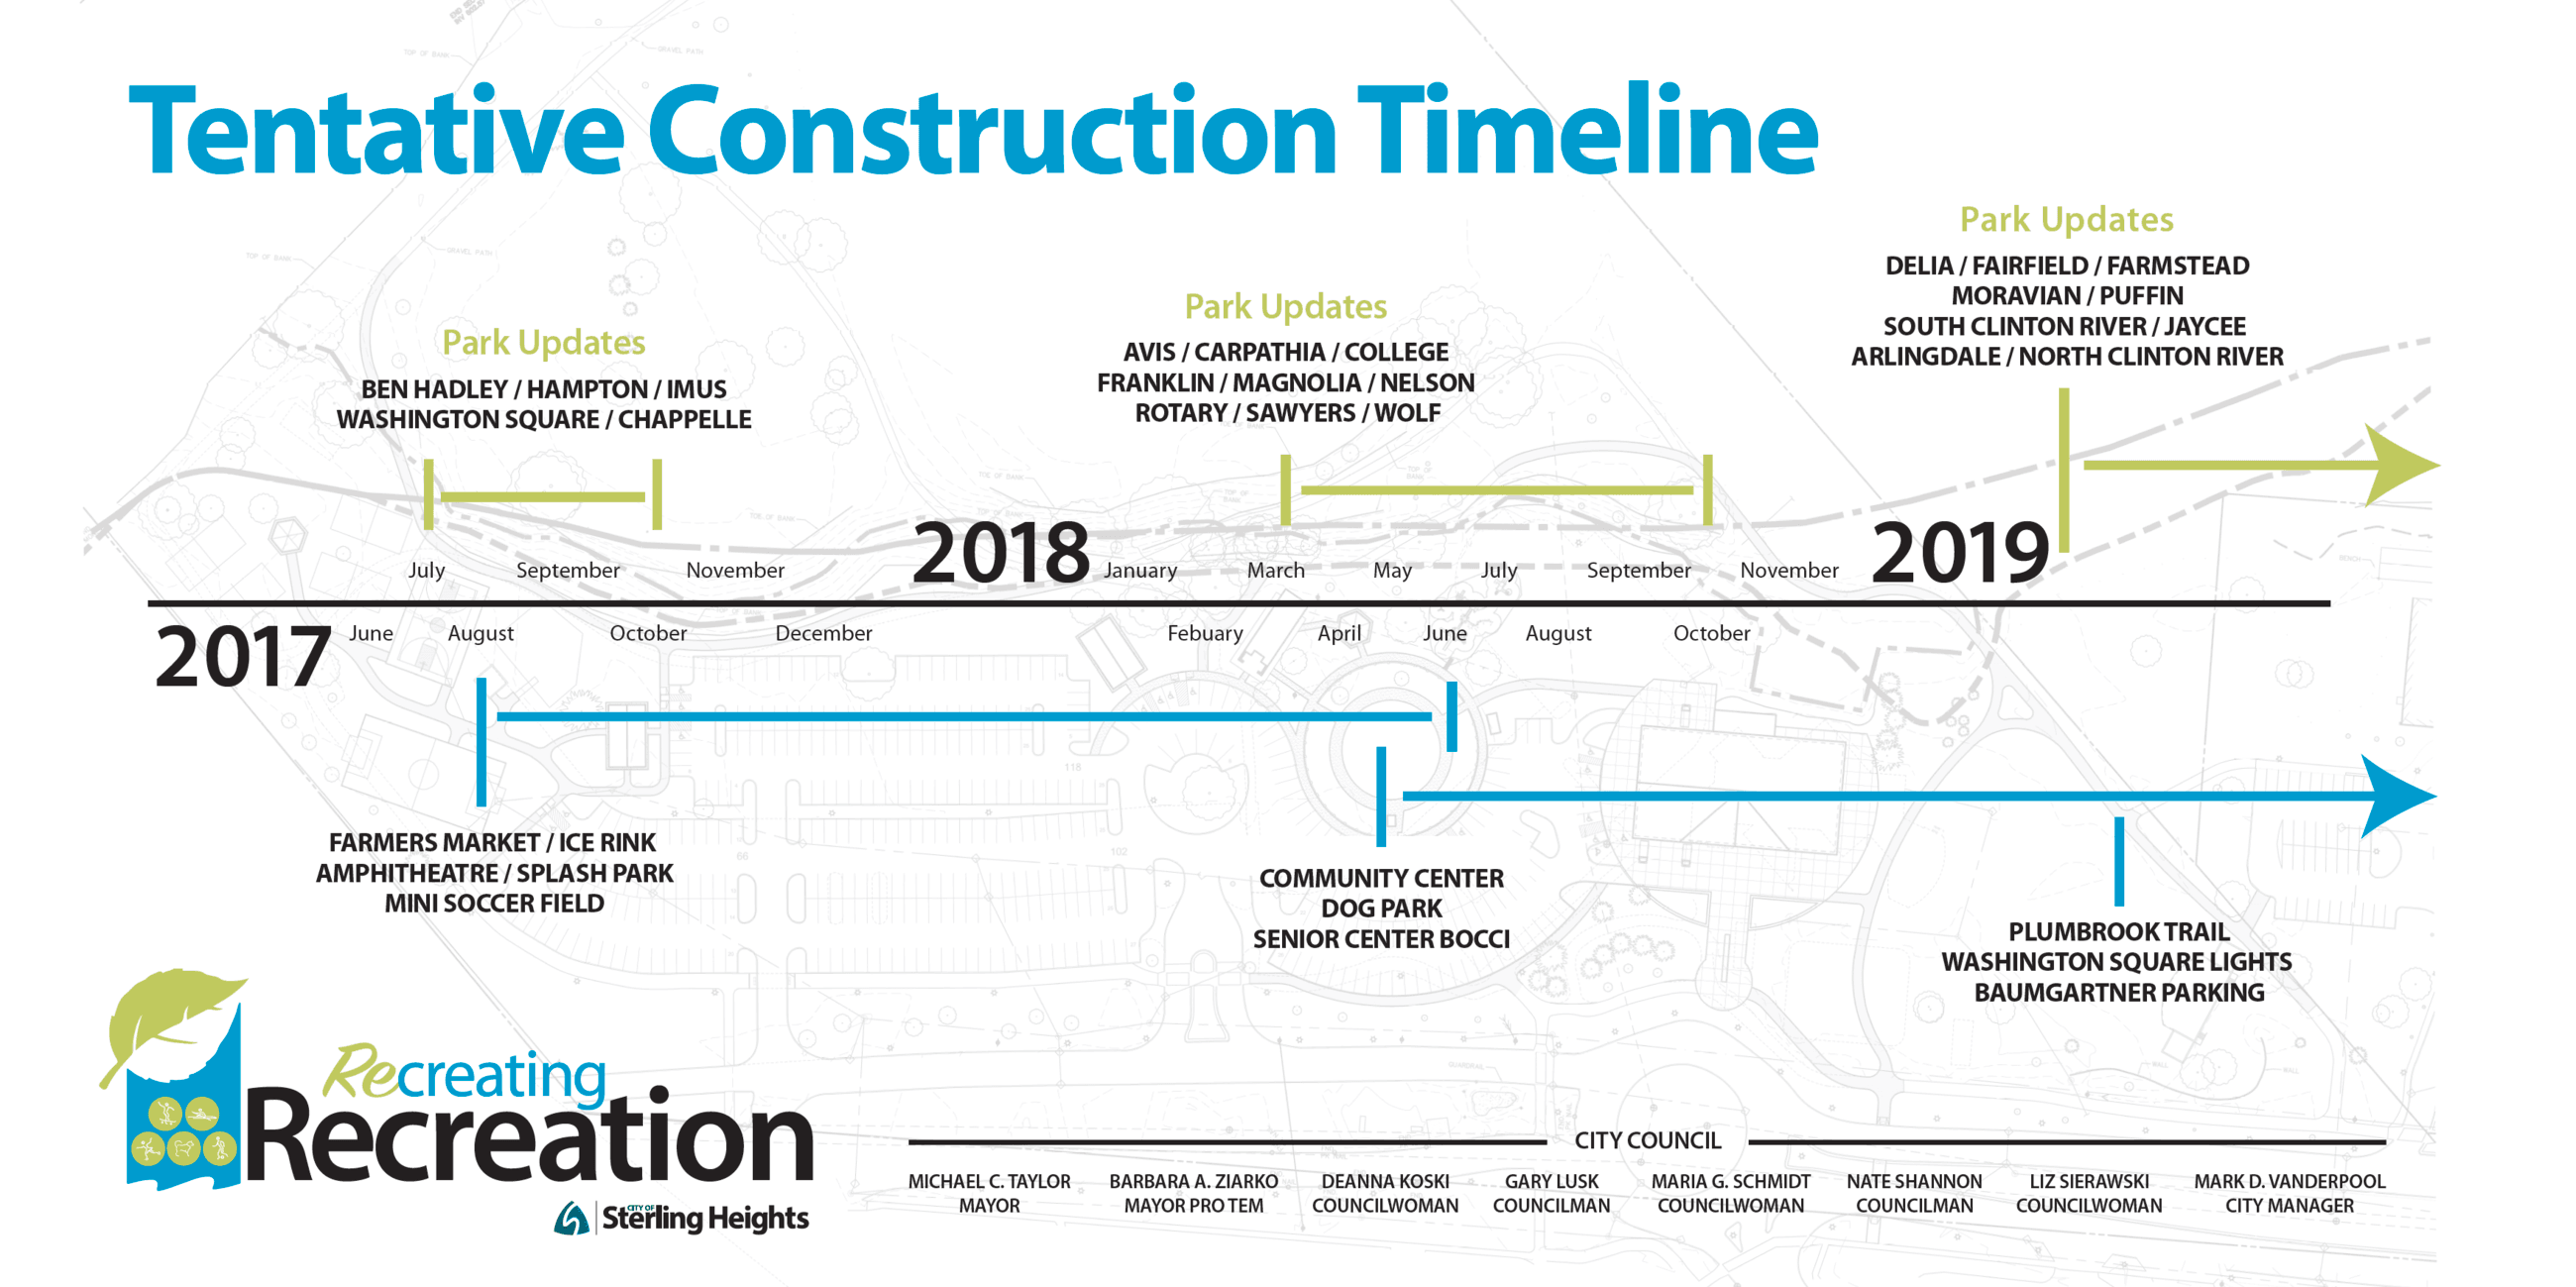 Proposed Construction Timeline – Construction Timeline